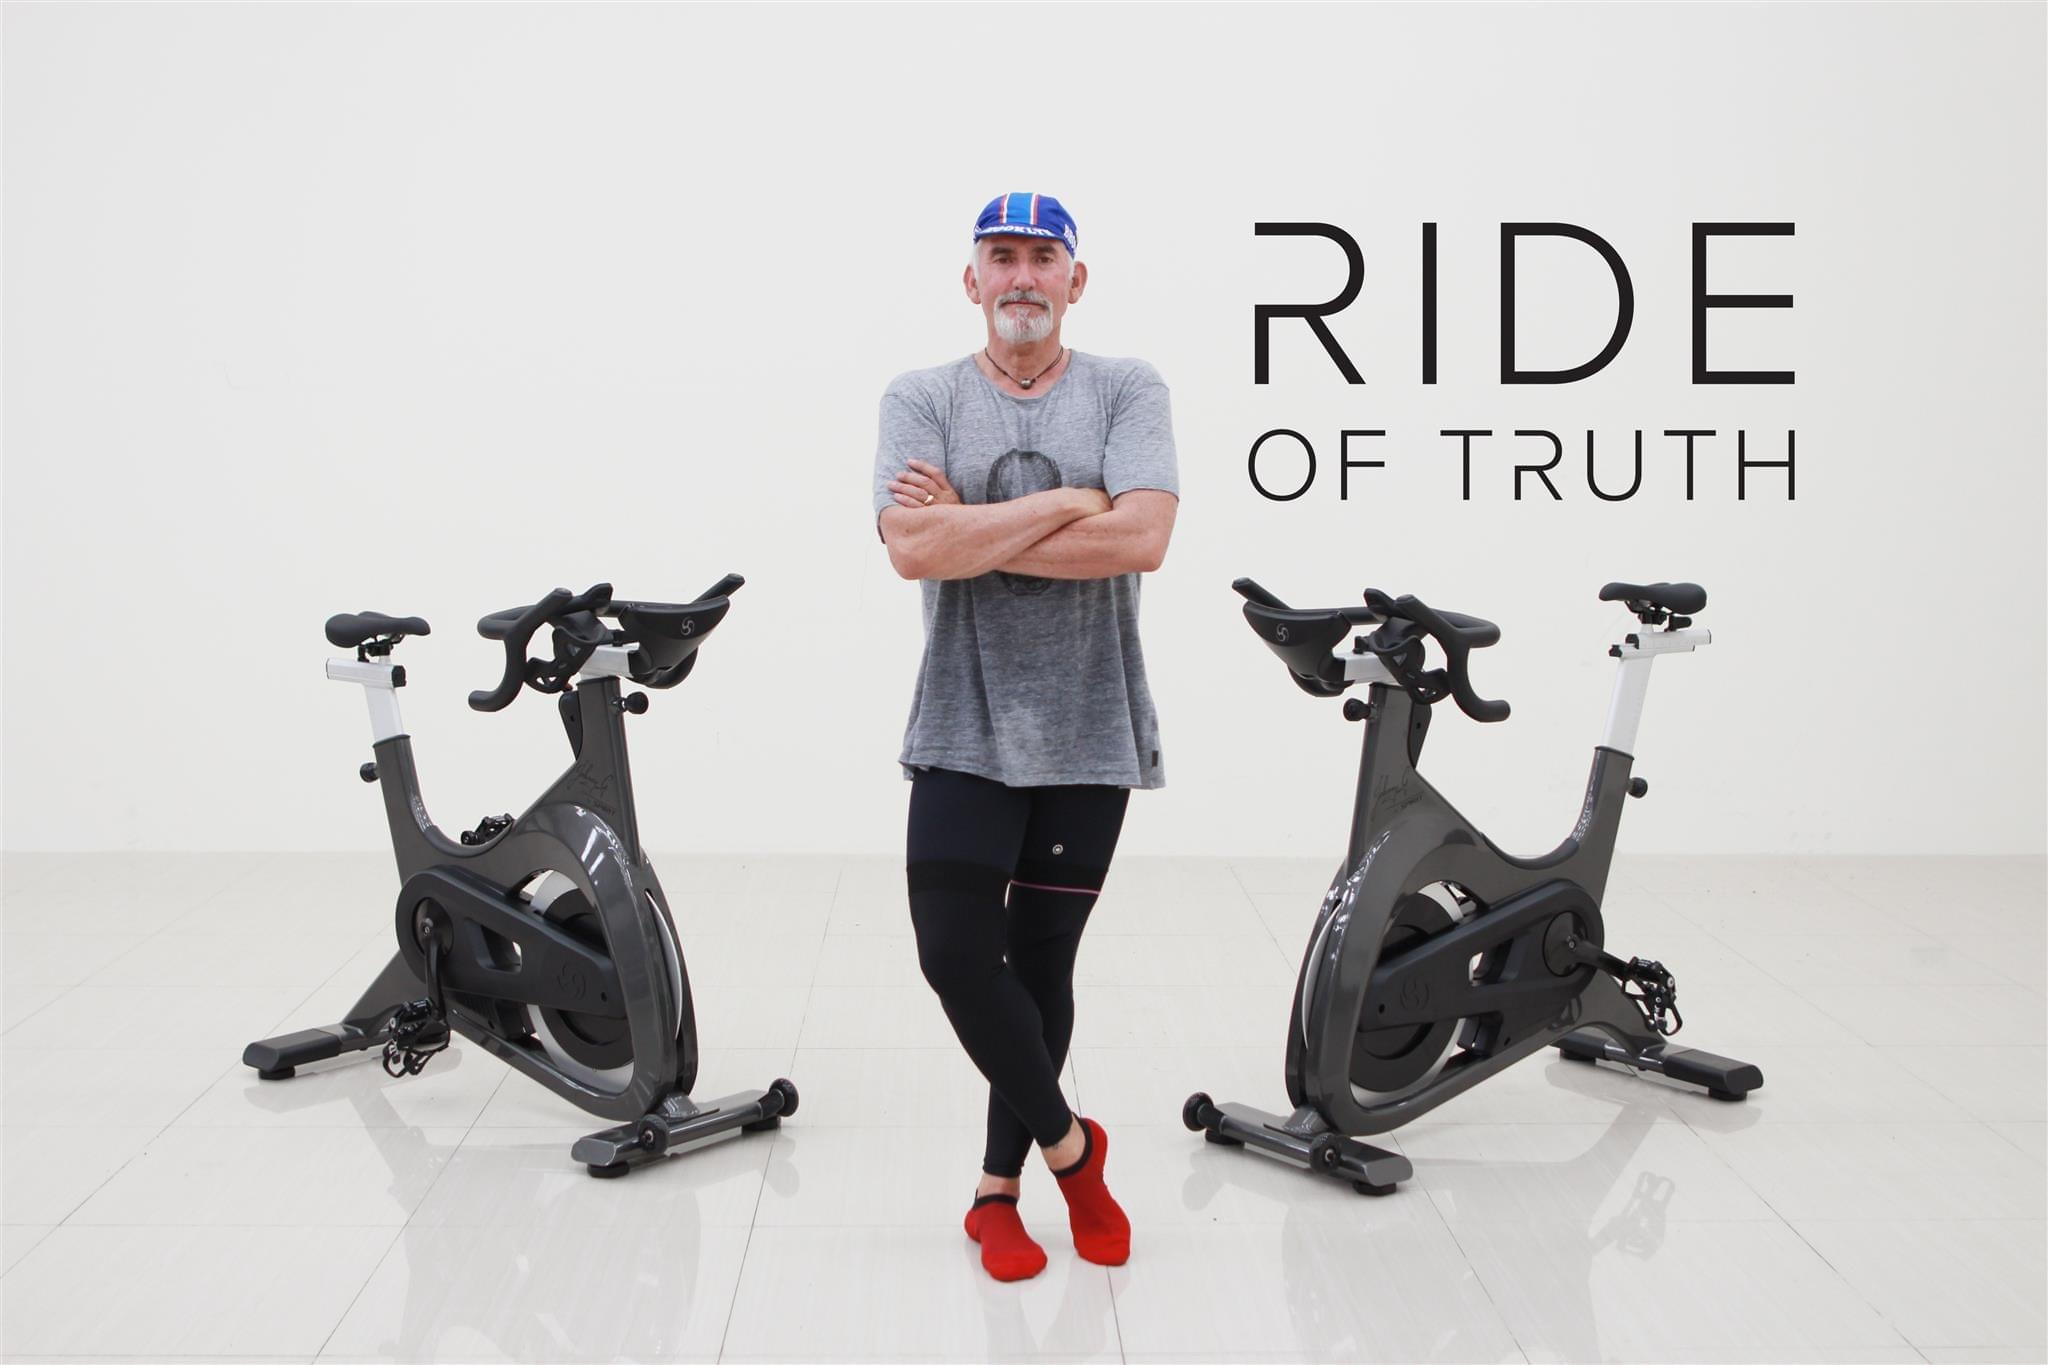 The Ride of Truth by Johnny G